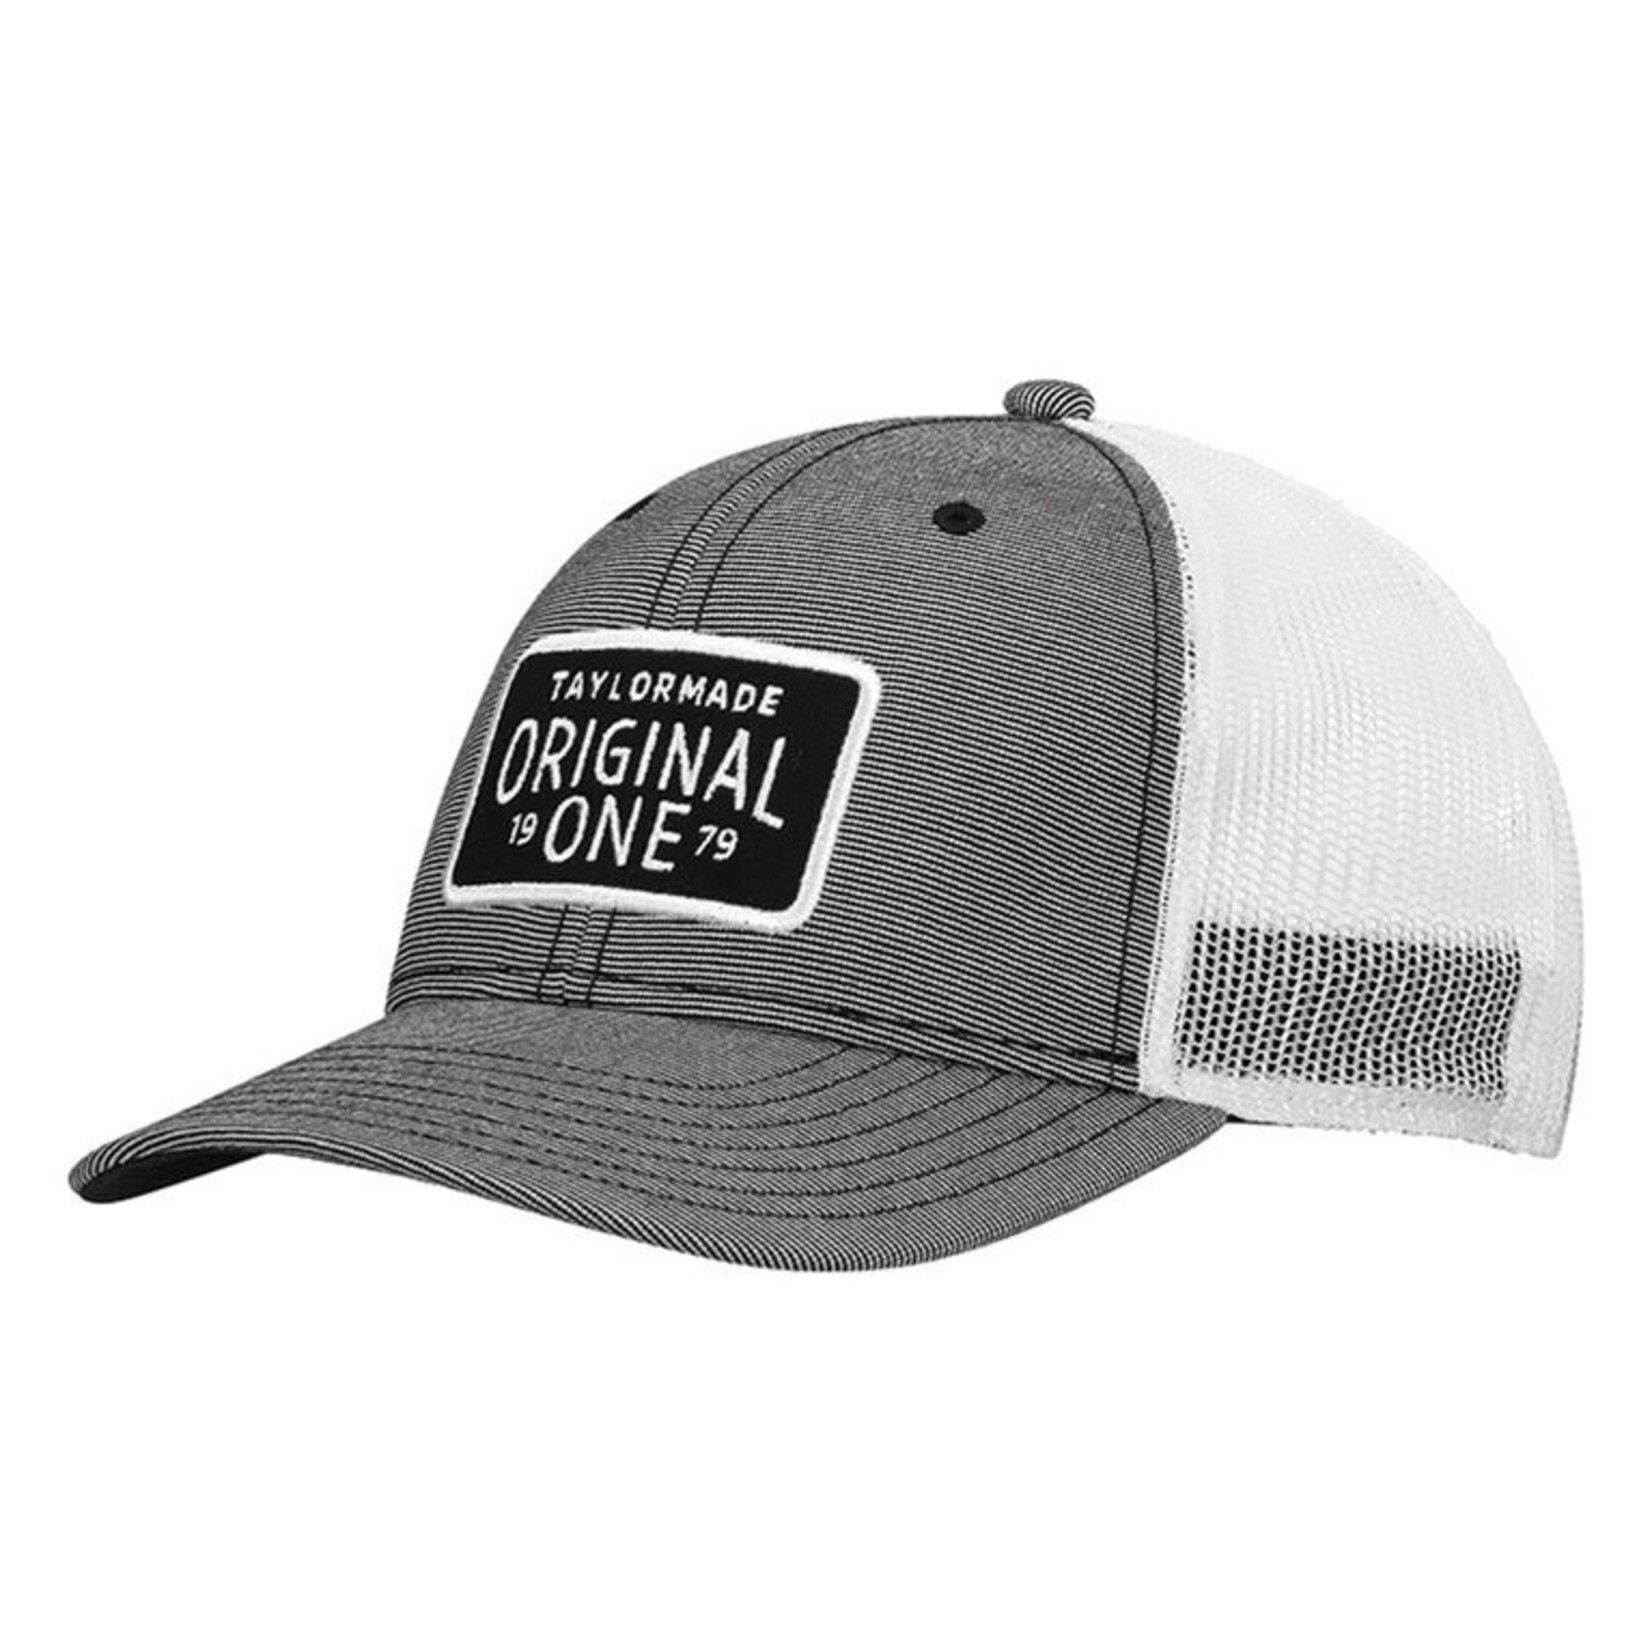 TaylorMade Taylormade Lifestyle Original One S Trucker Golf Hat